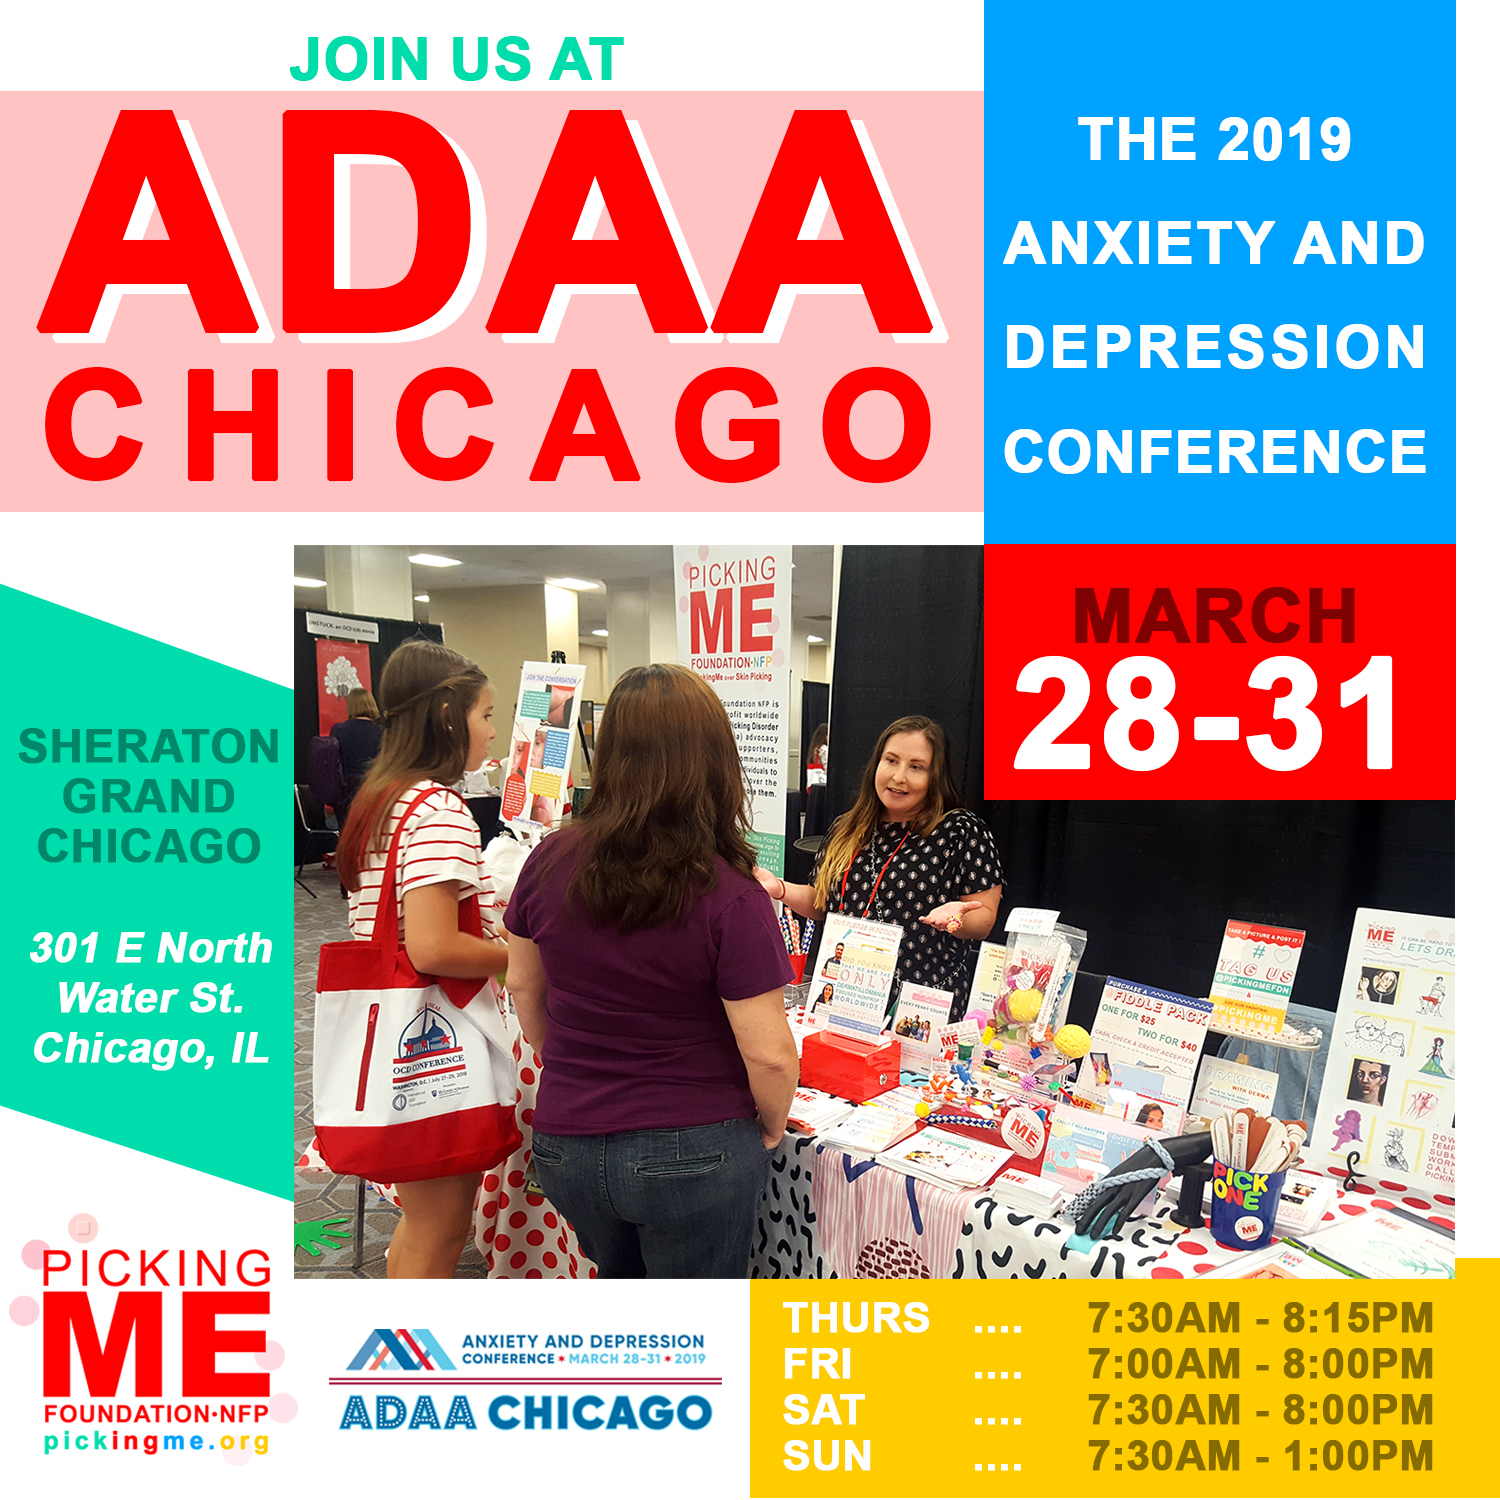 Chicago Anxiety & Depression Conference